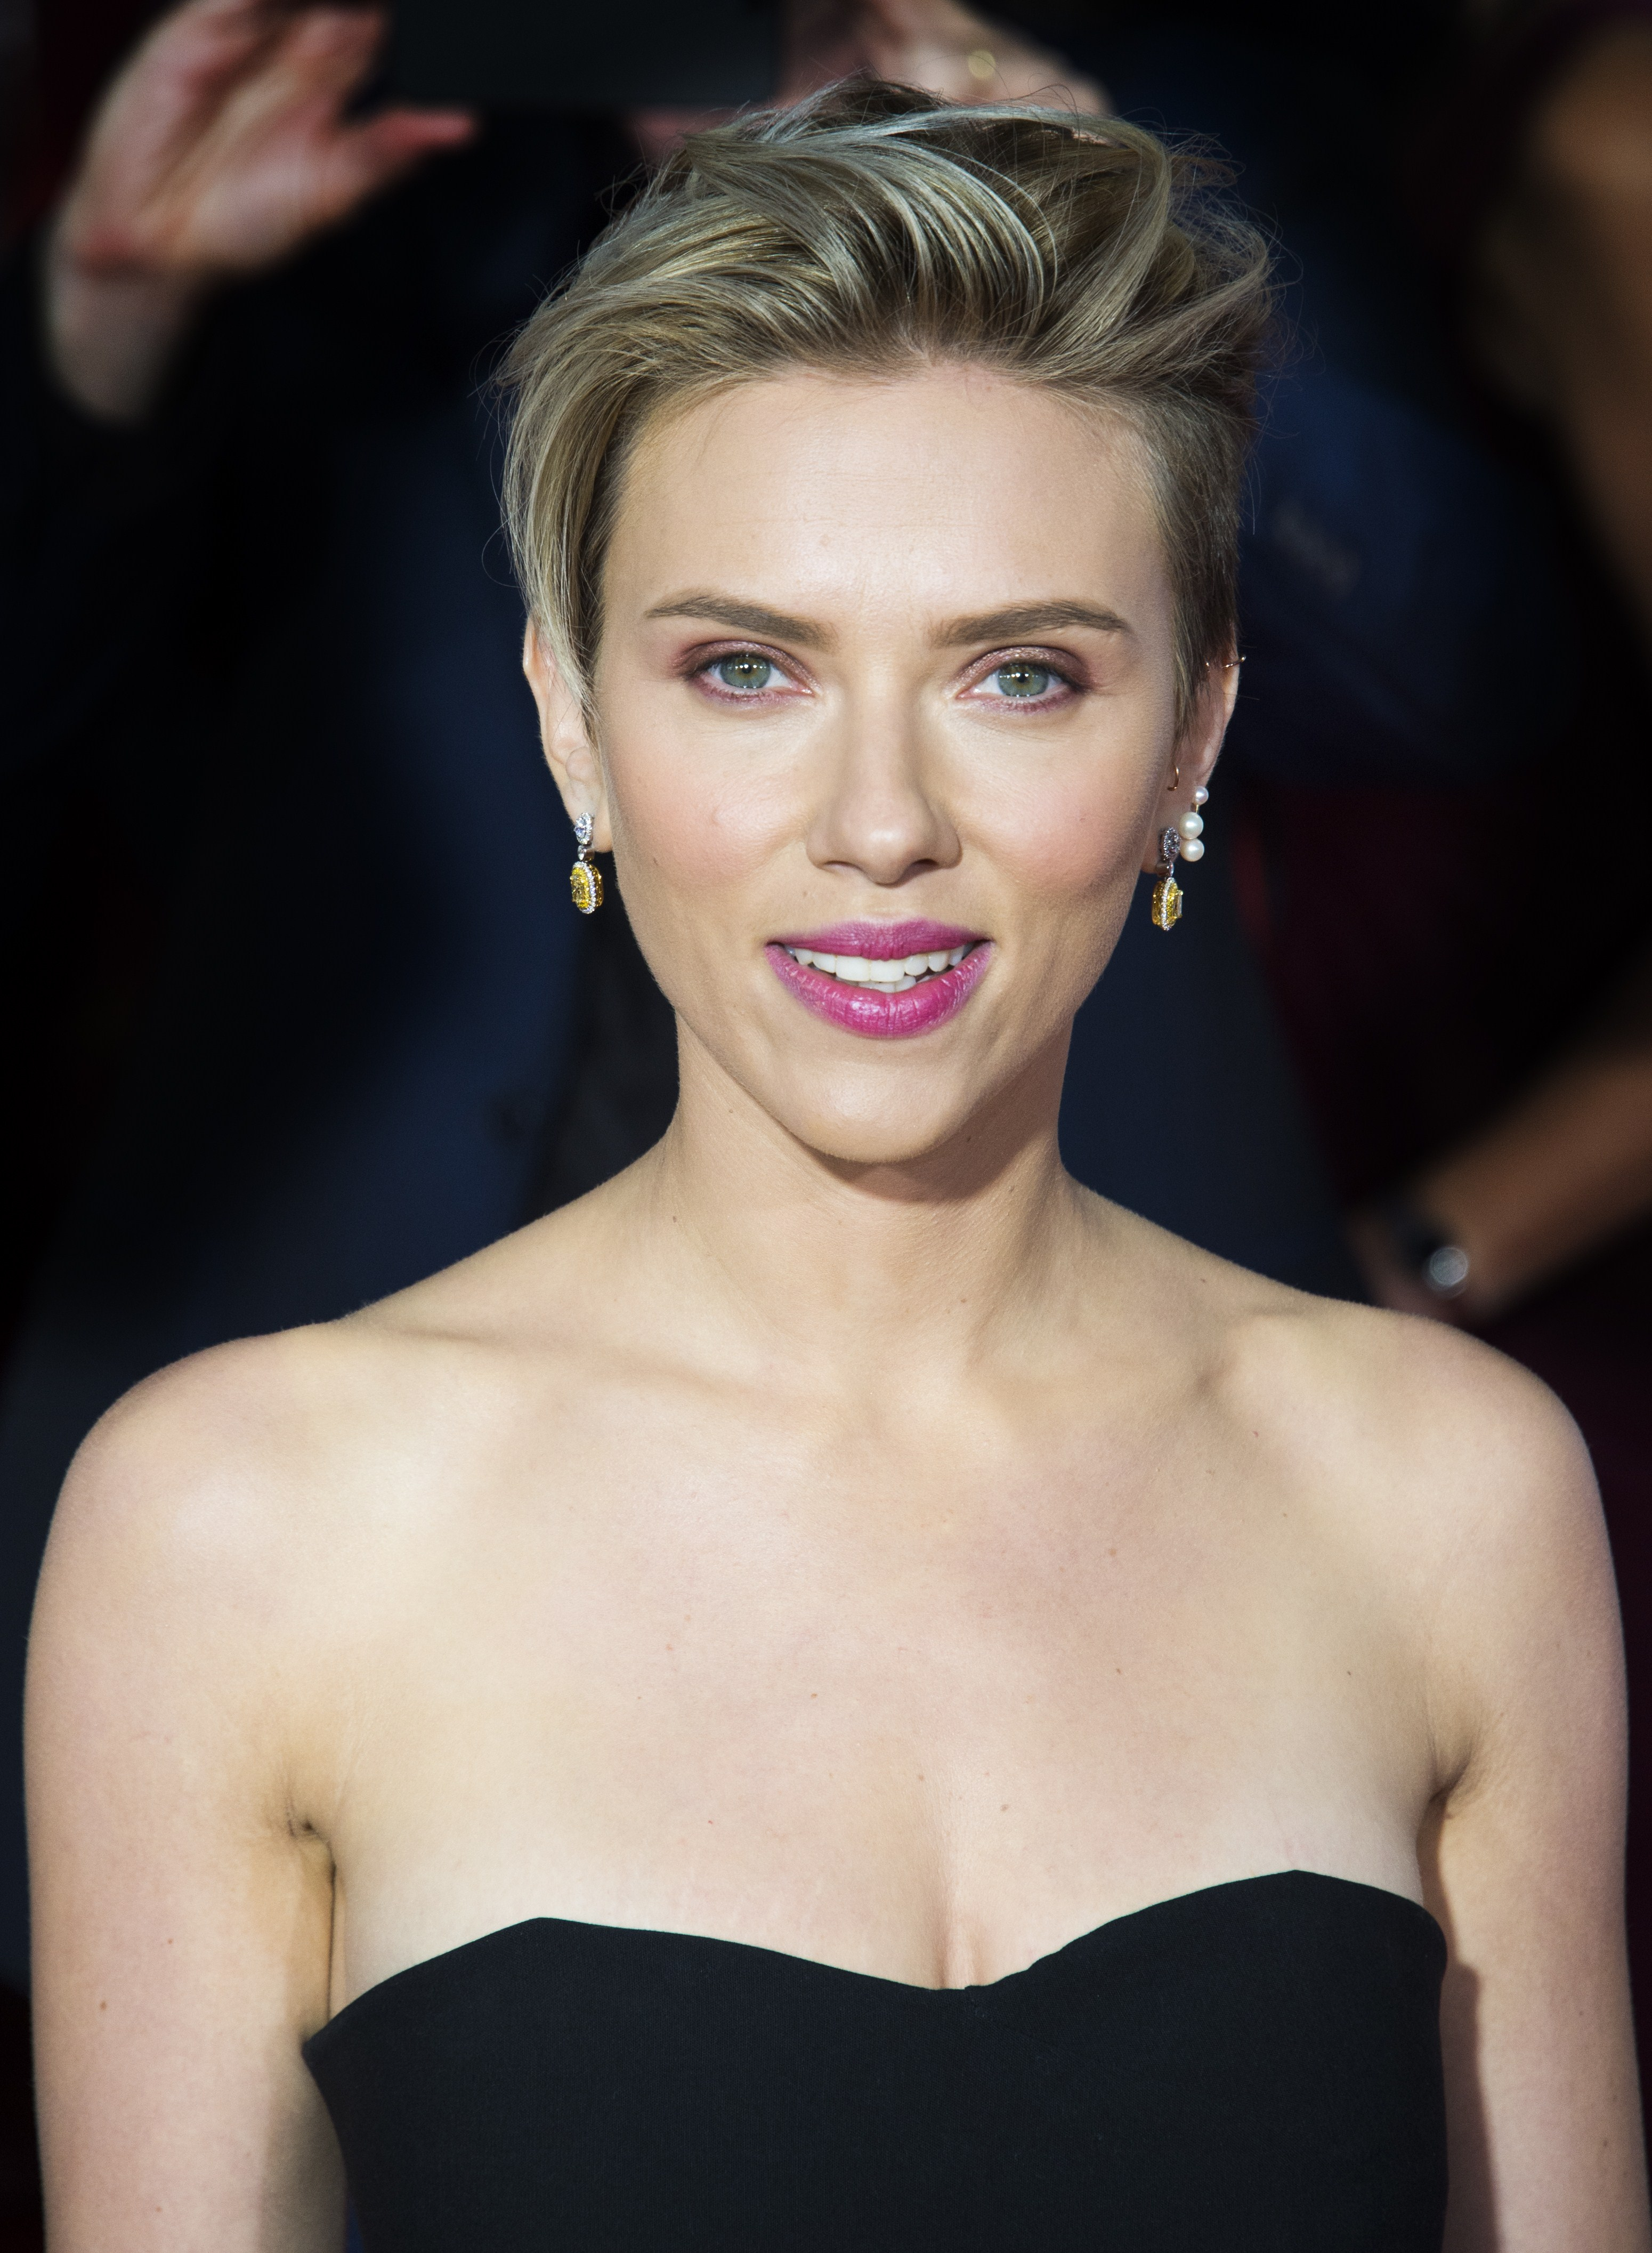 Scarlett Johansson Dyes Hair Red But Shes Been This Color Several